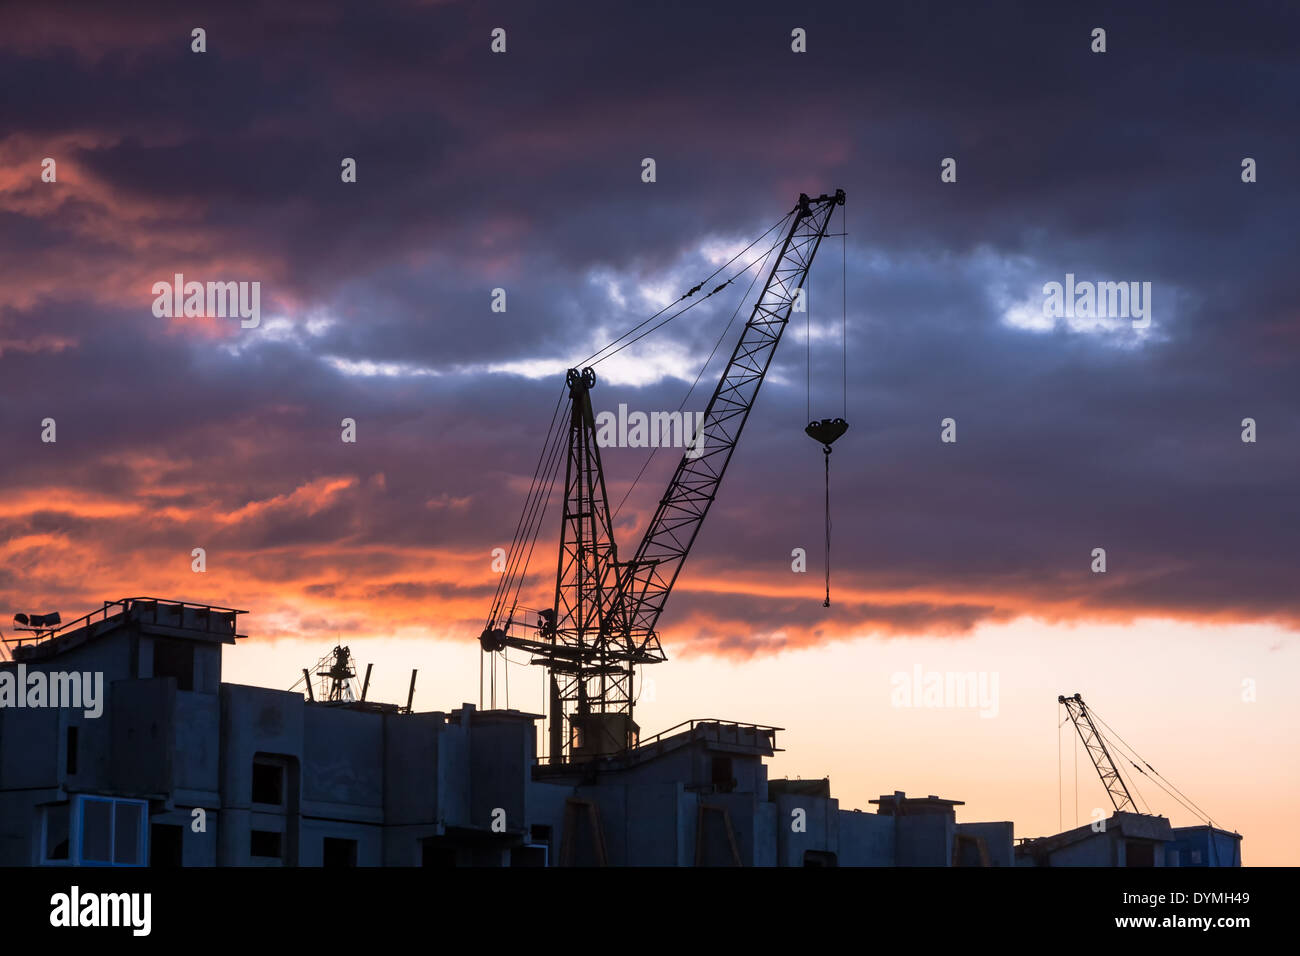 Silhouette of construction crane on dramatic sky background at the sundown - Stock Image